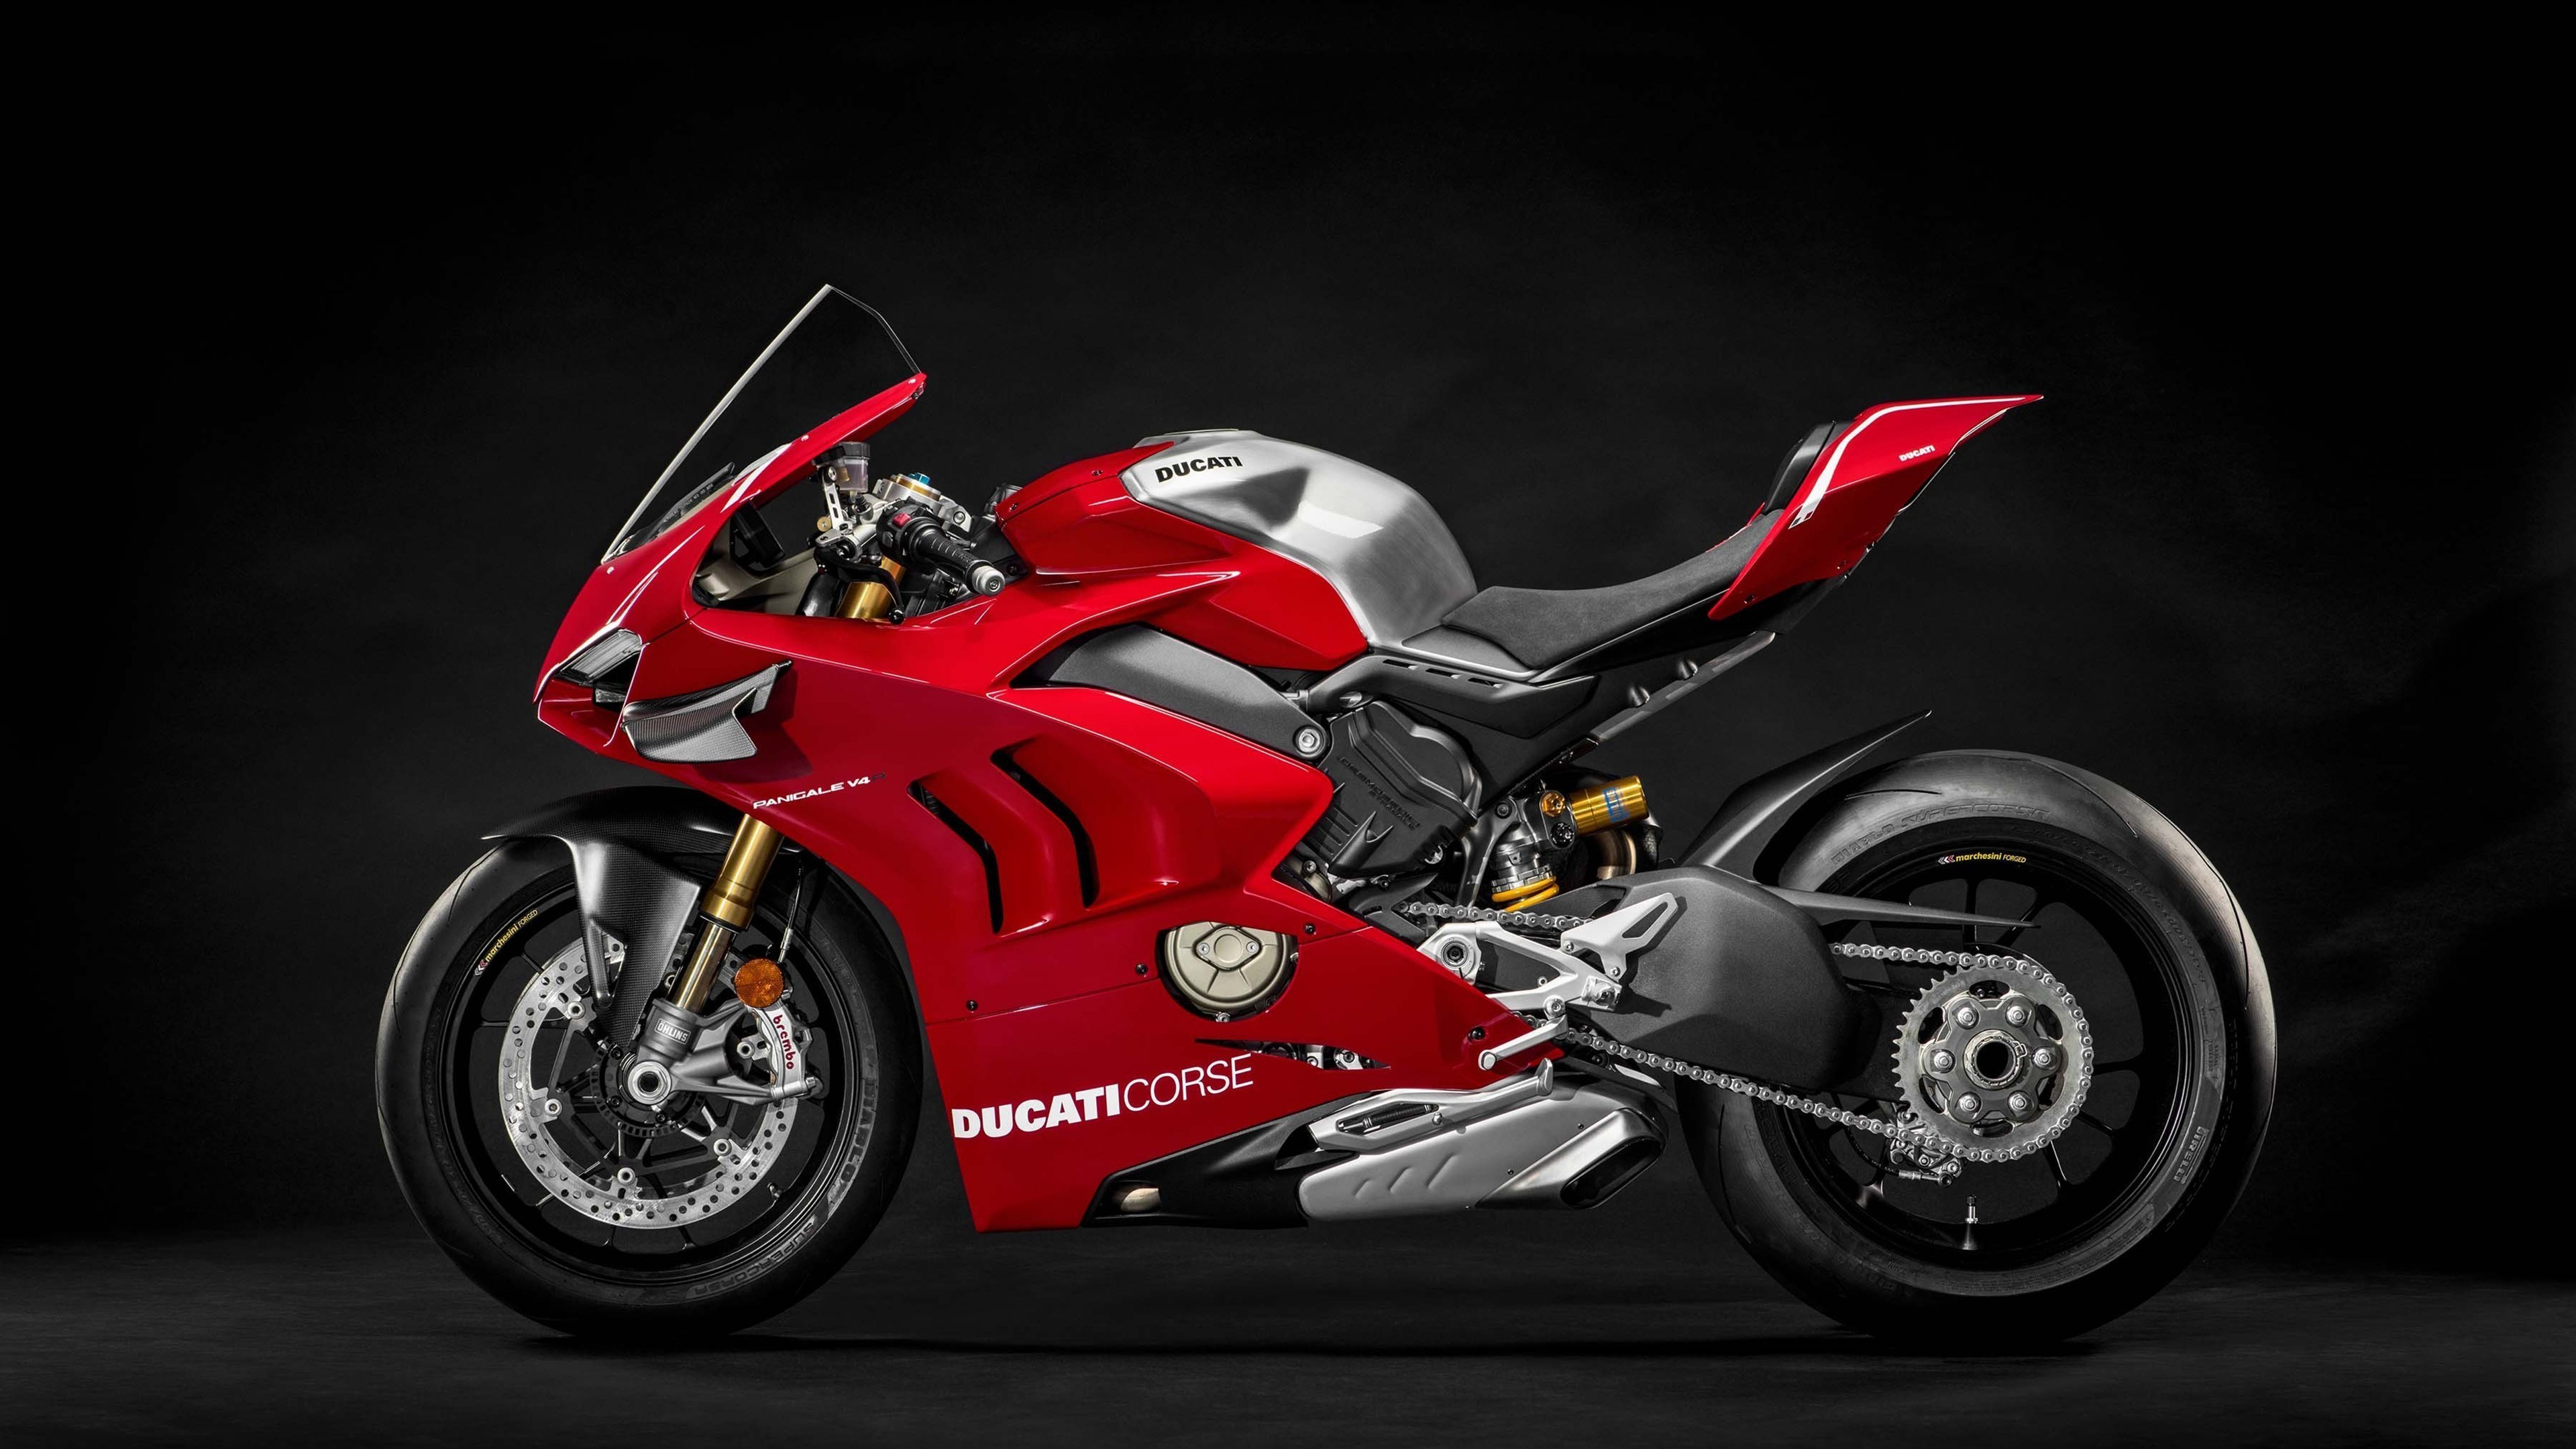 2019 Ducati Panigale V4 R Motorcycle HD Wallpapers 3840x2160